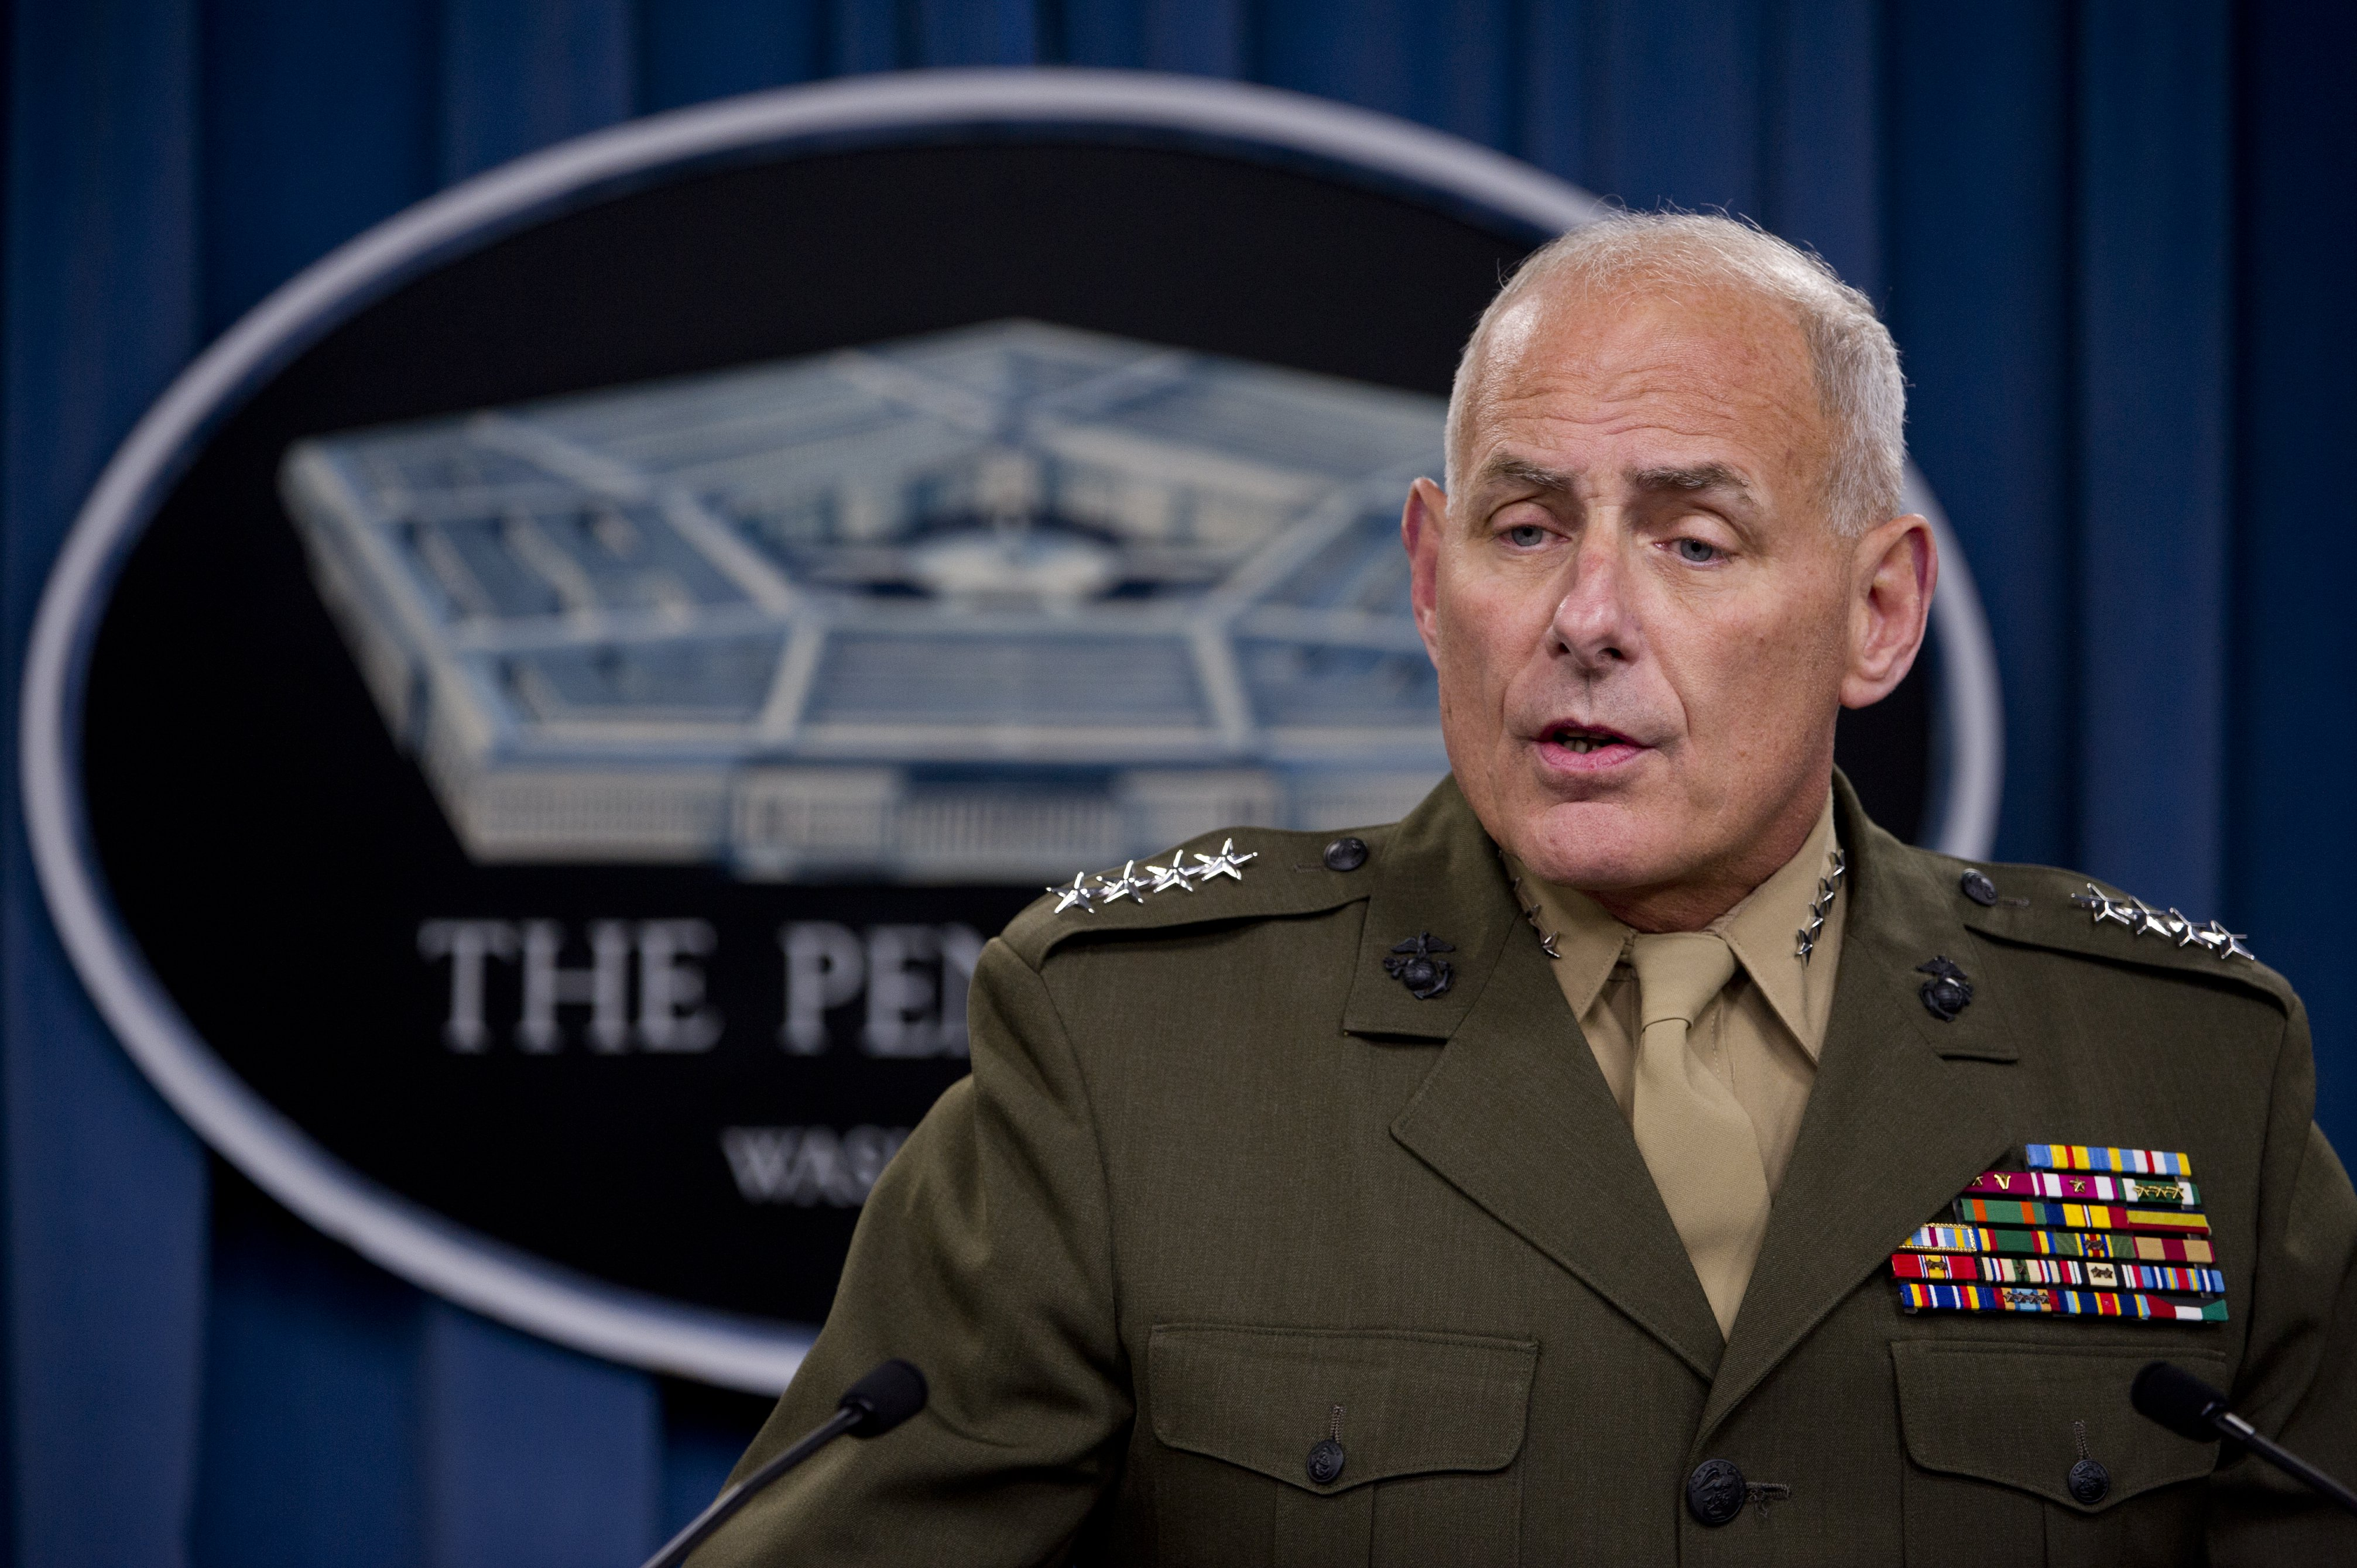 Marine Gen. John Kelly boldly takes charge as White House Chief of Staff: Ousts Anthony Scaramucci Featured